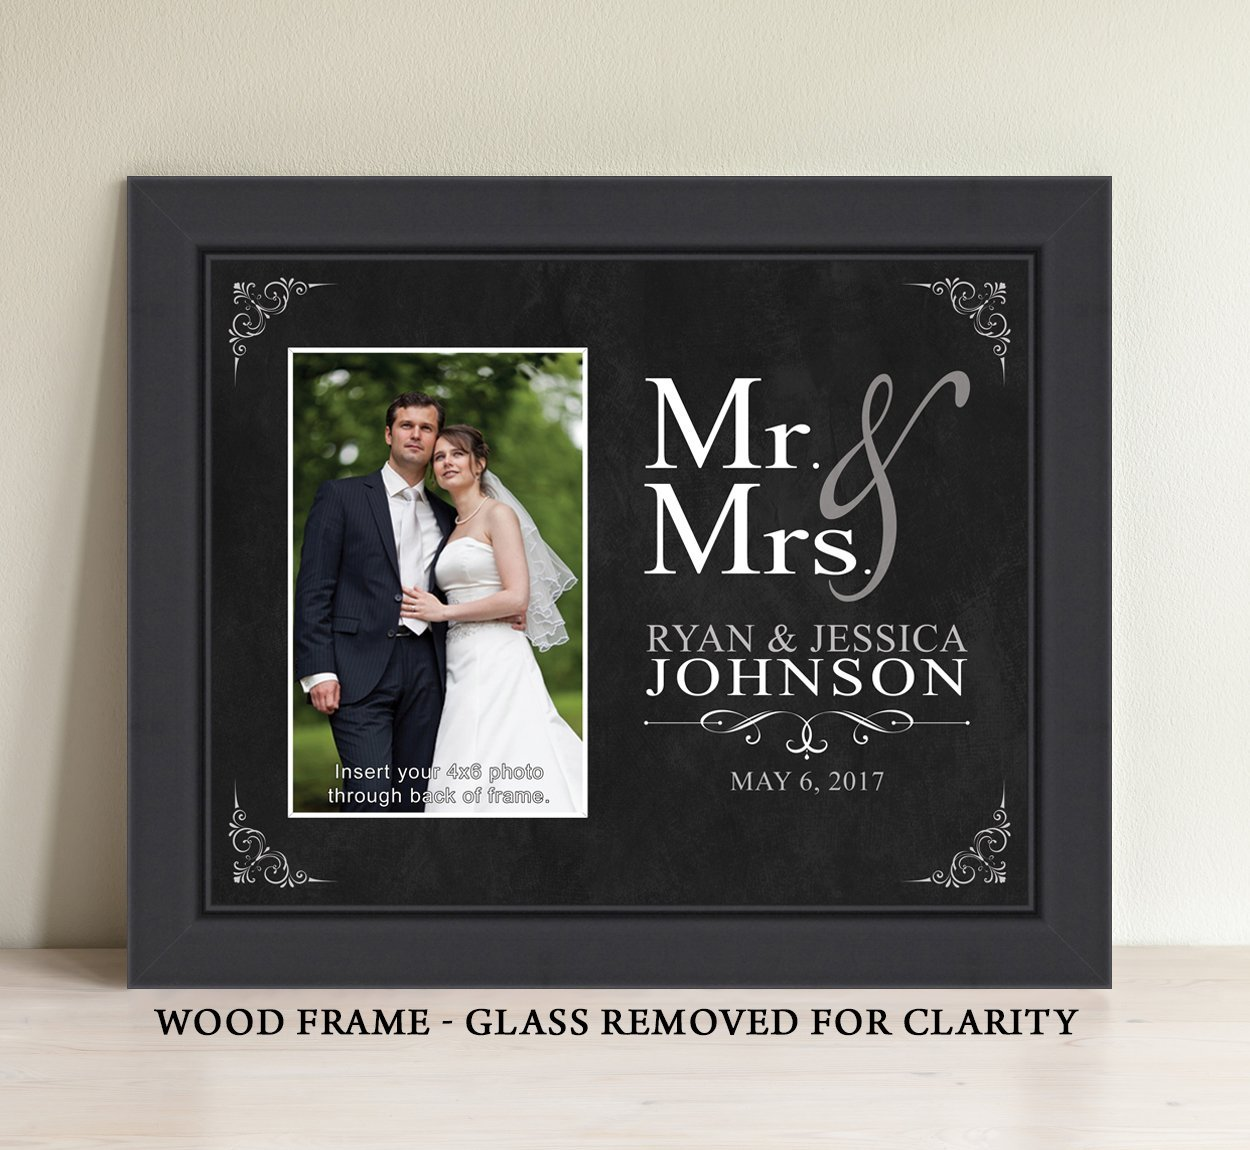 Amazon personalized mr and mrs picture frame wedding gift amazon personalized mr and mrs picture frame wedding gift bridal shower gift handmade jeuxipadfo Image collections